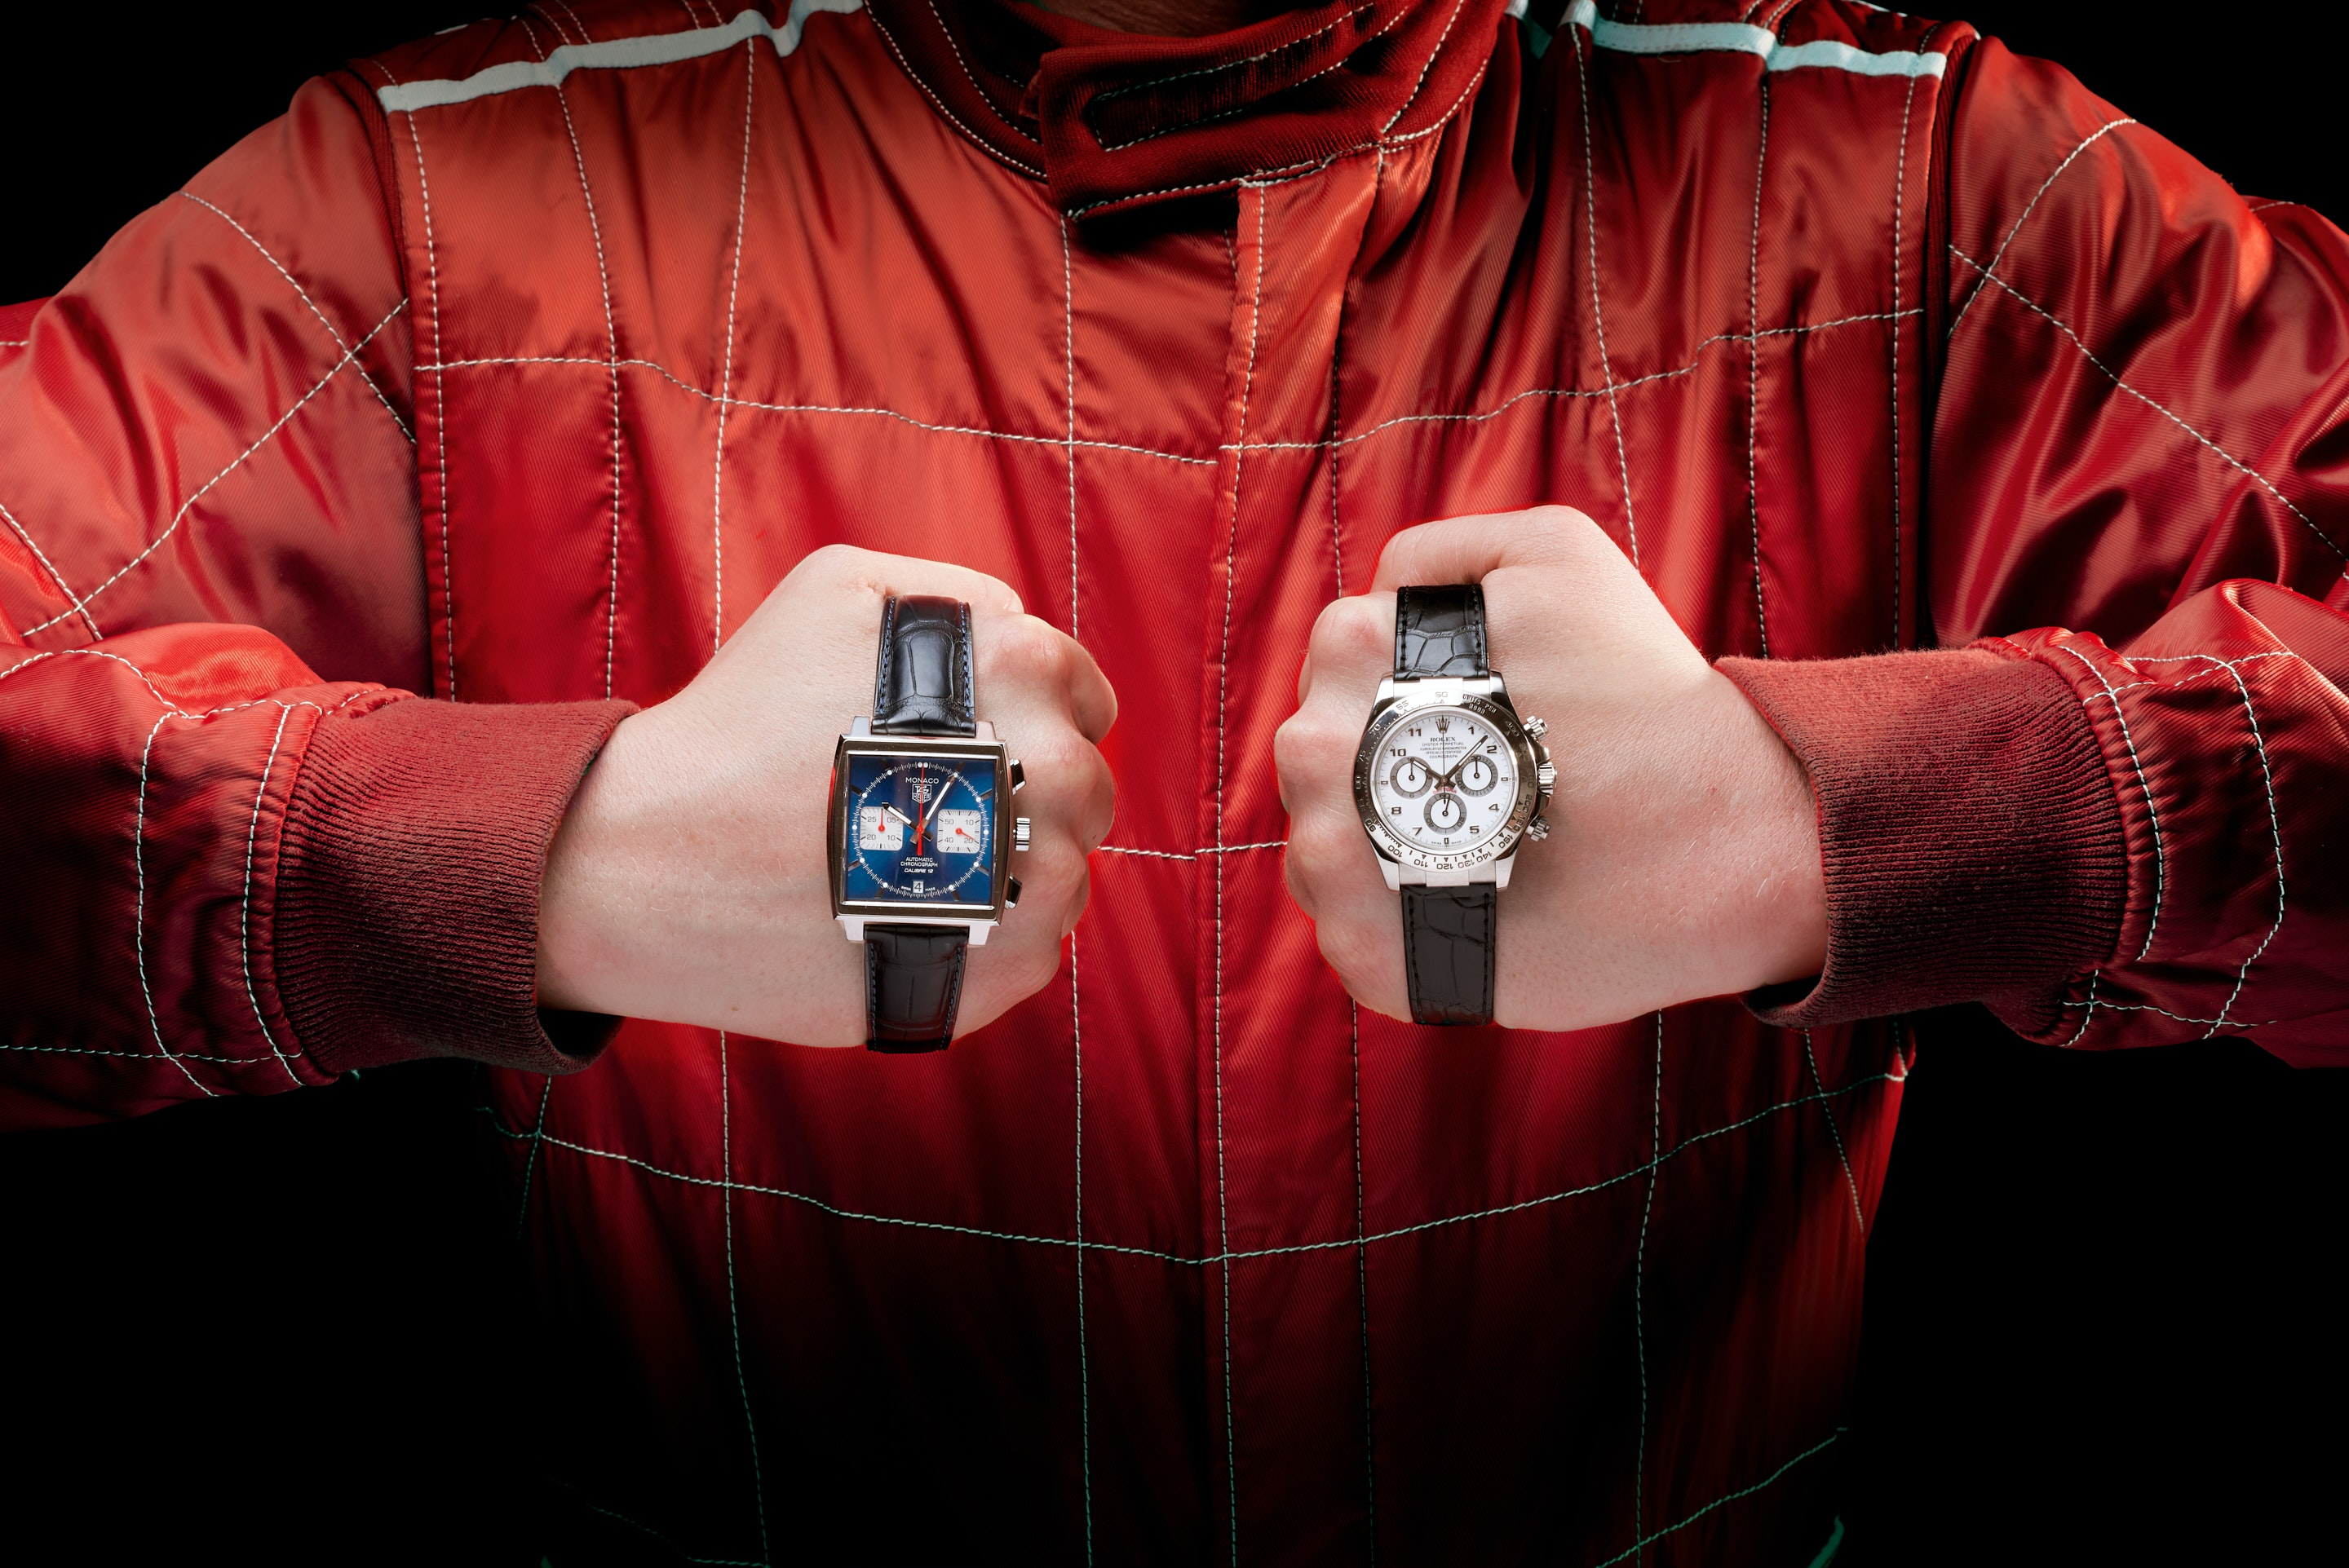 Battle of the racing watches: Rolex Daytona vs TAG Heuer Monaco